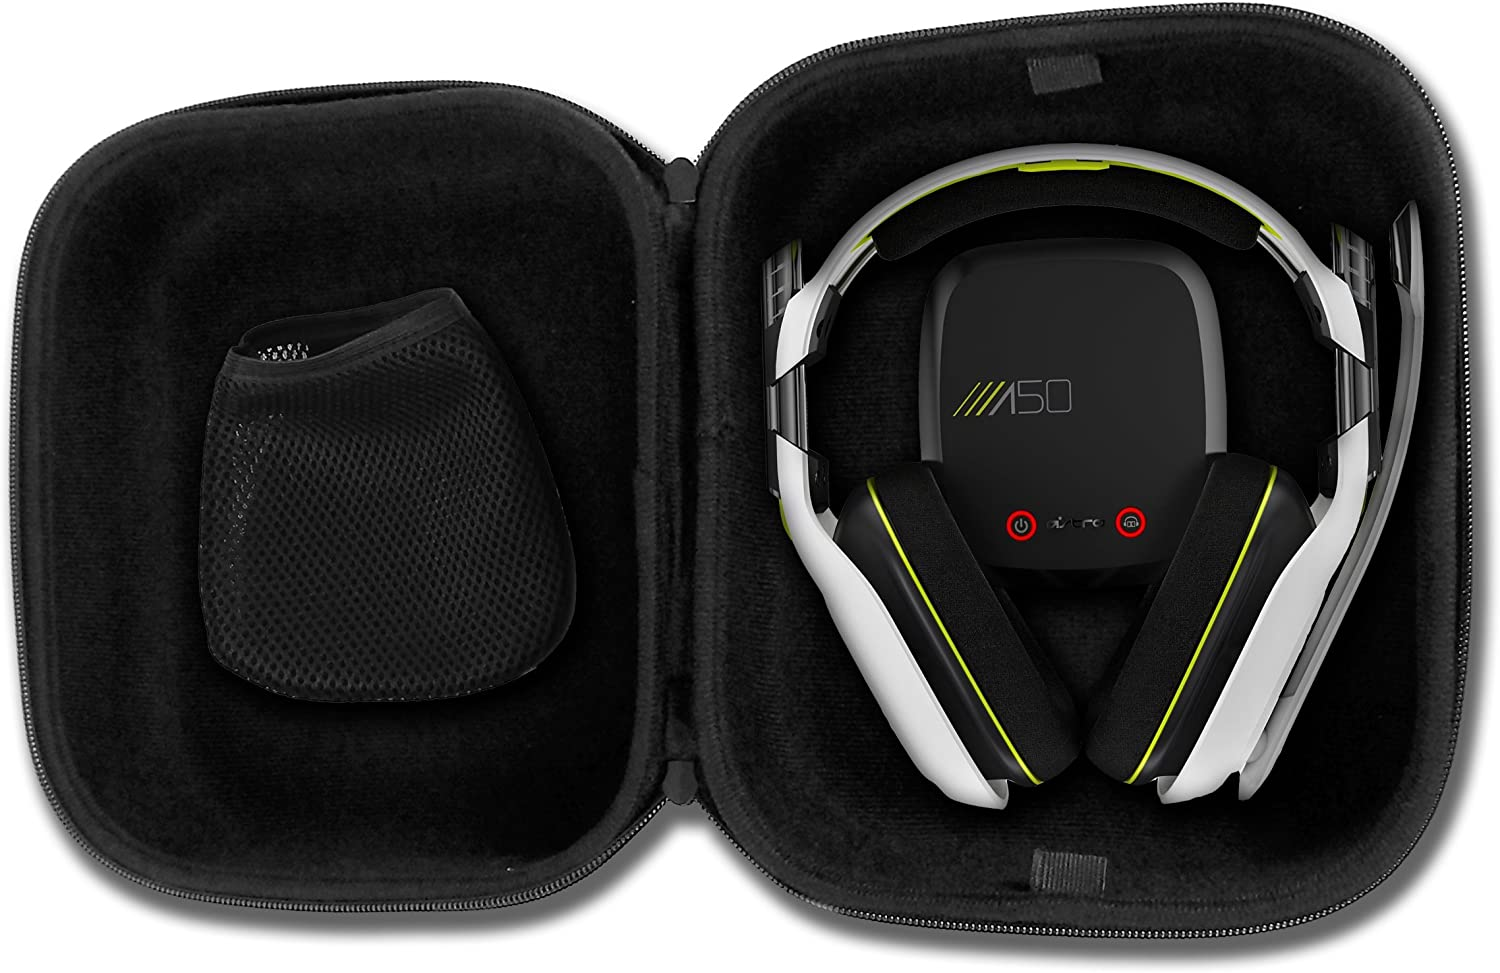 Casematix Gaming Headset Travel Case Bag Compatible with Astro A50, A40 tr and Microphone with Wired or Wireless Headphones for Pc Mac PS4 and Xbox